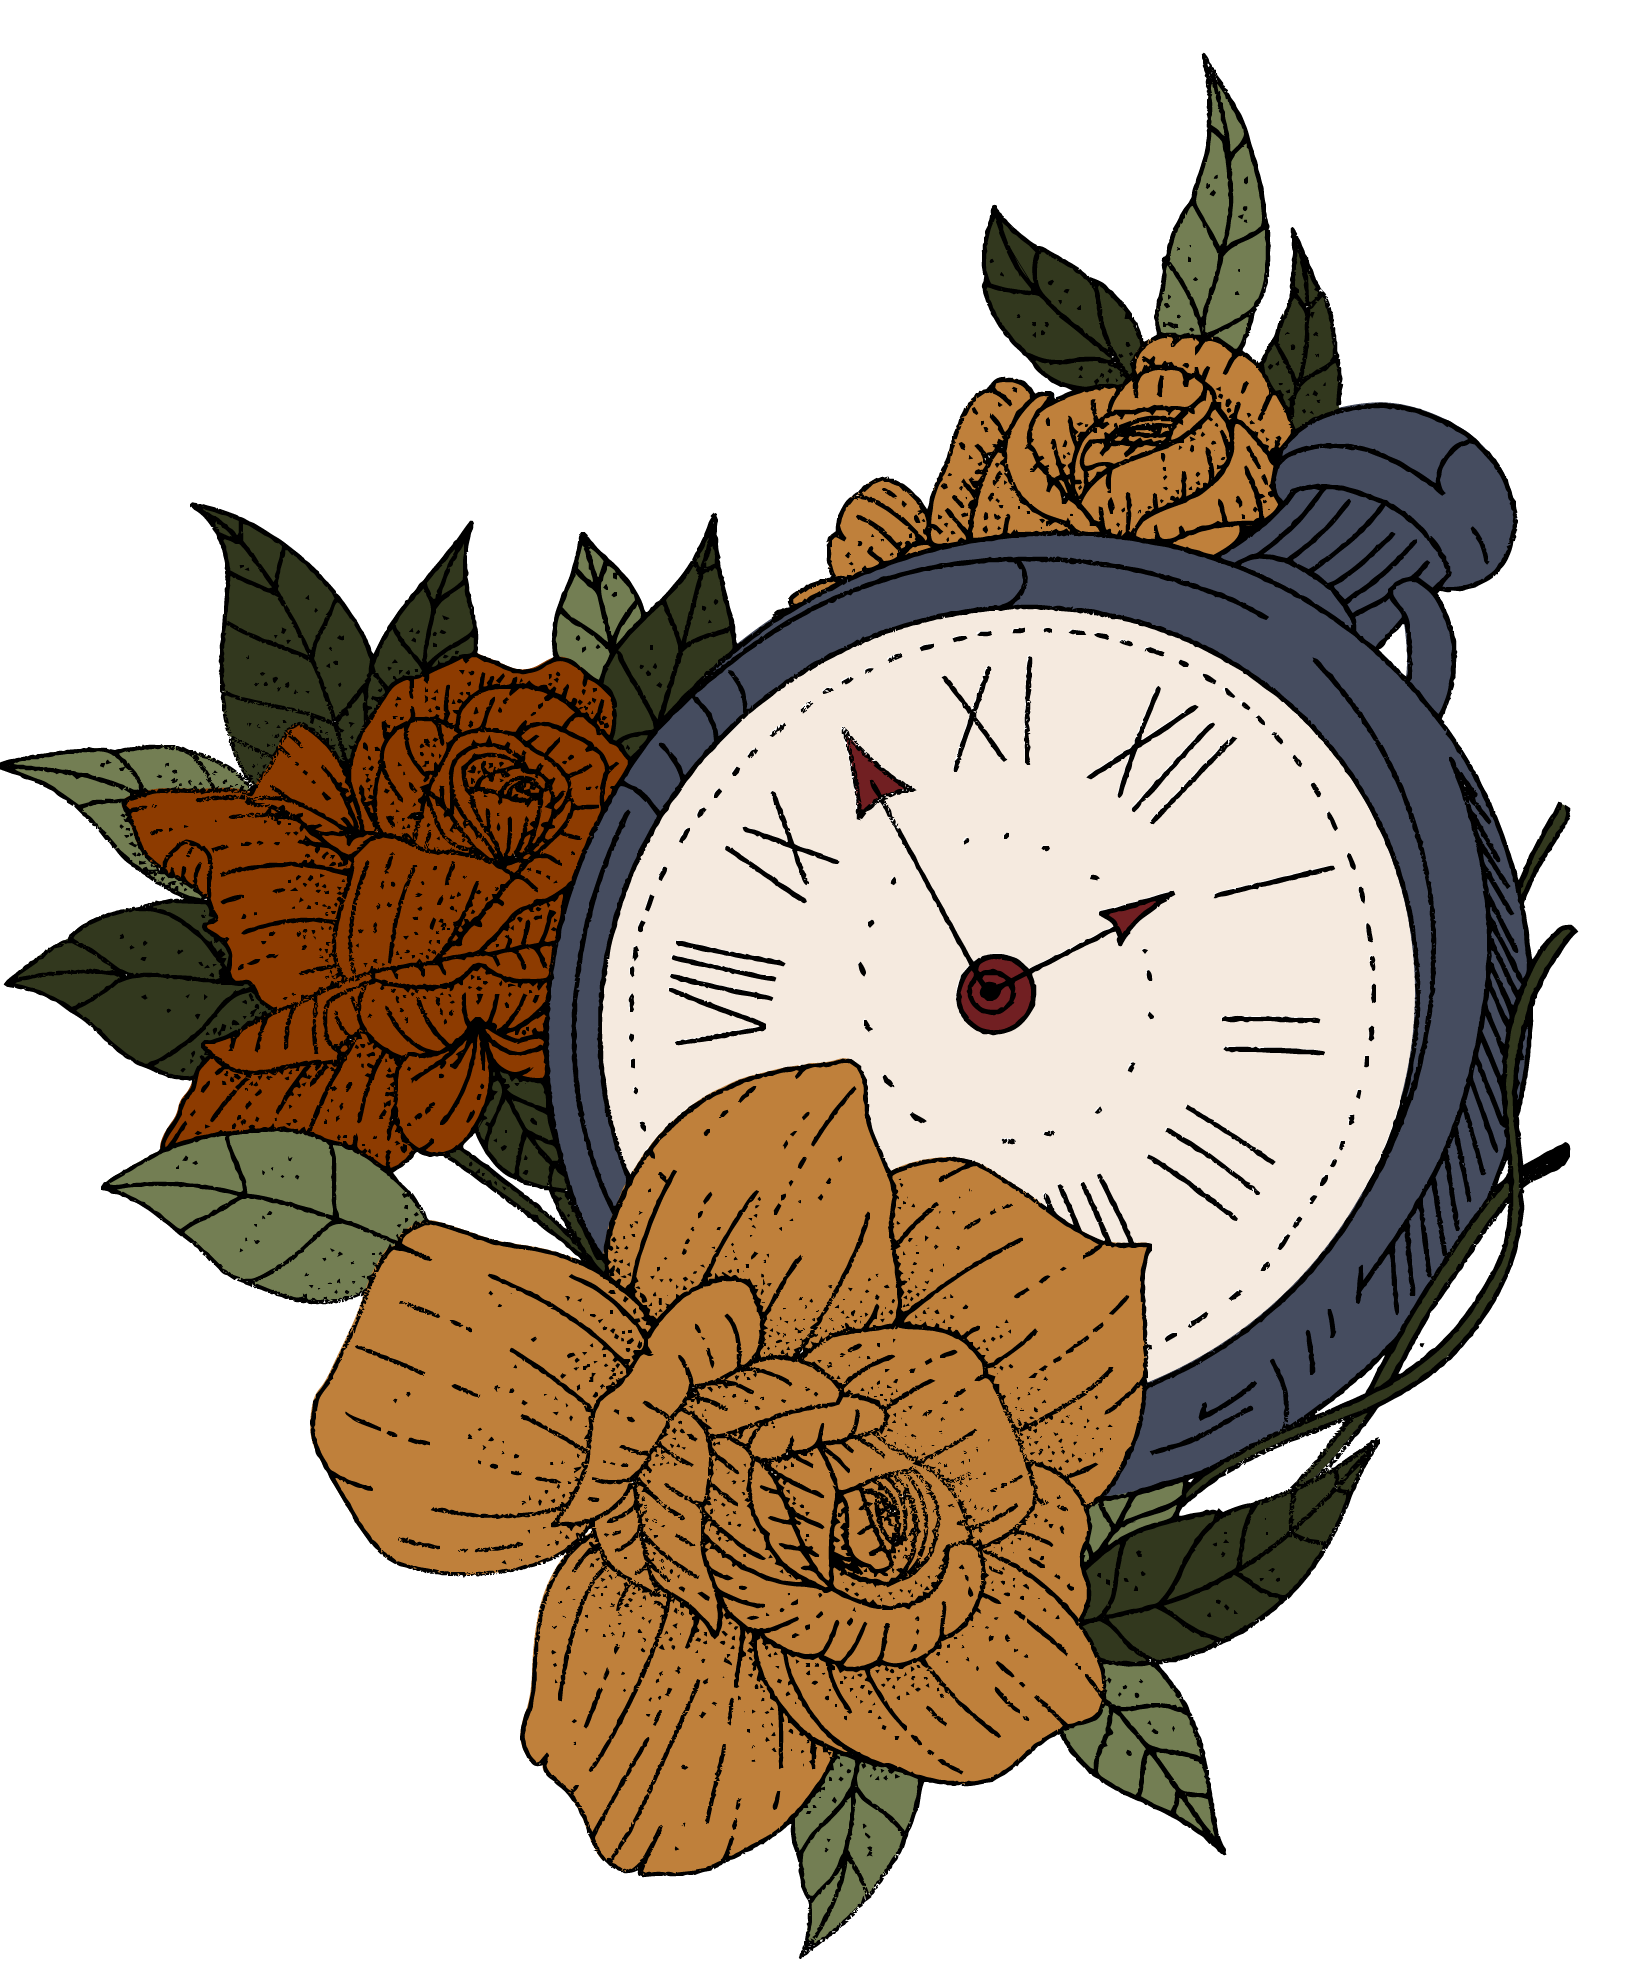 pocketwatch-02.png